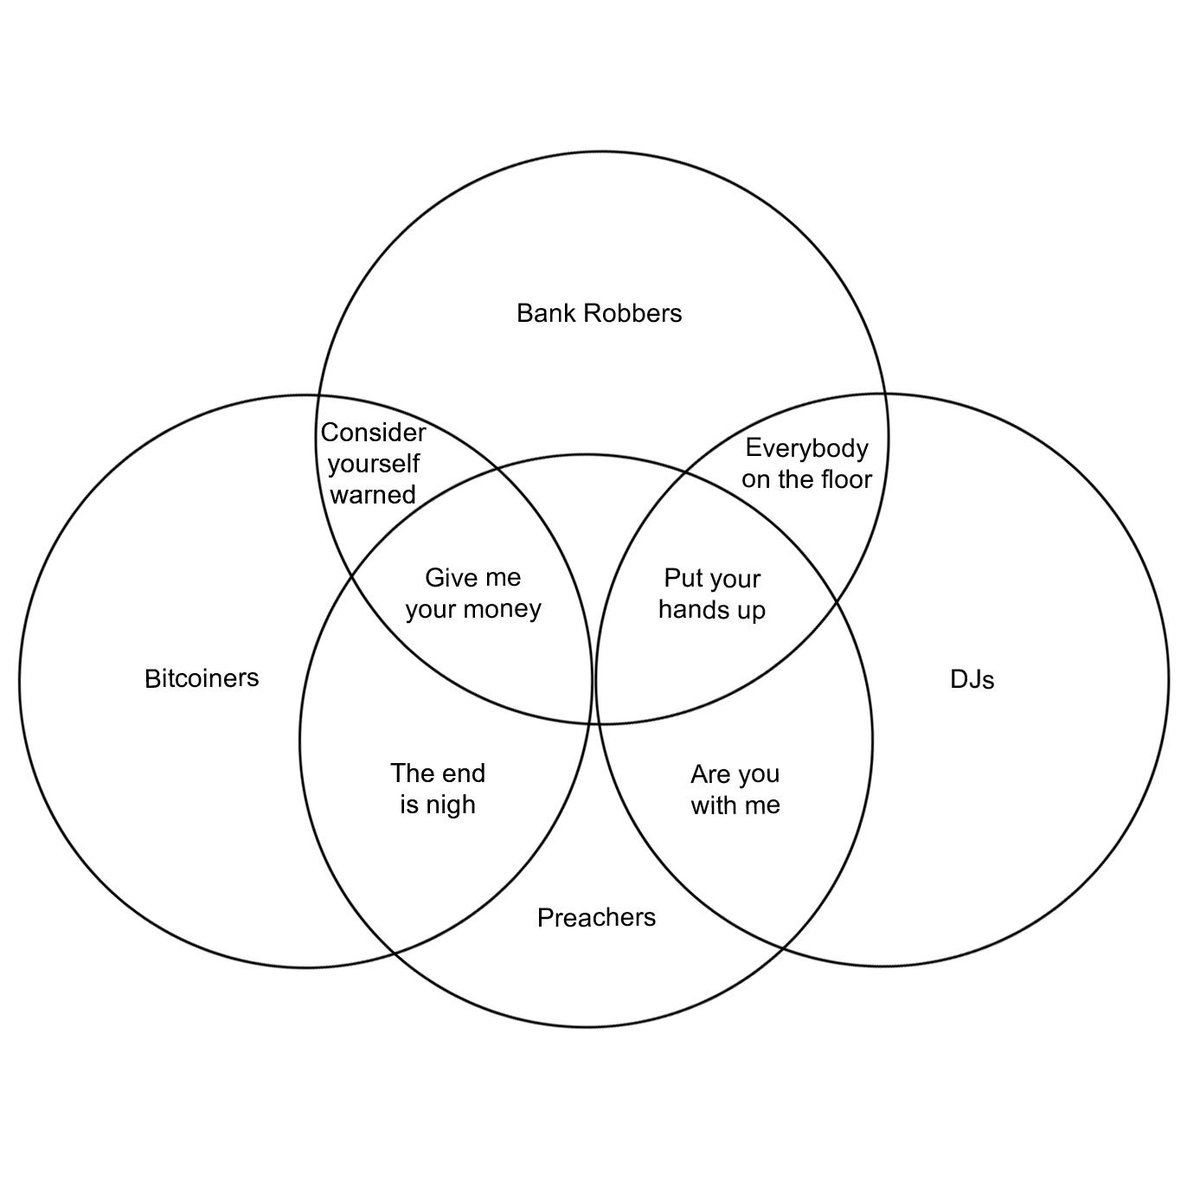 Tim Swanson On Twitter A Venn Diagram Consisting Of